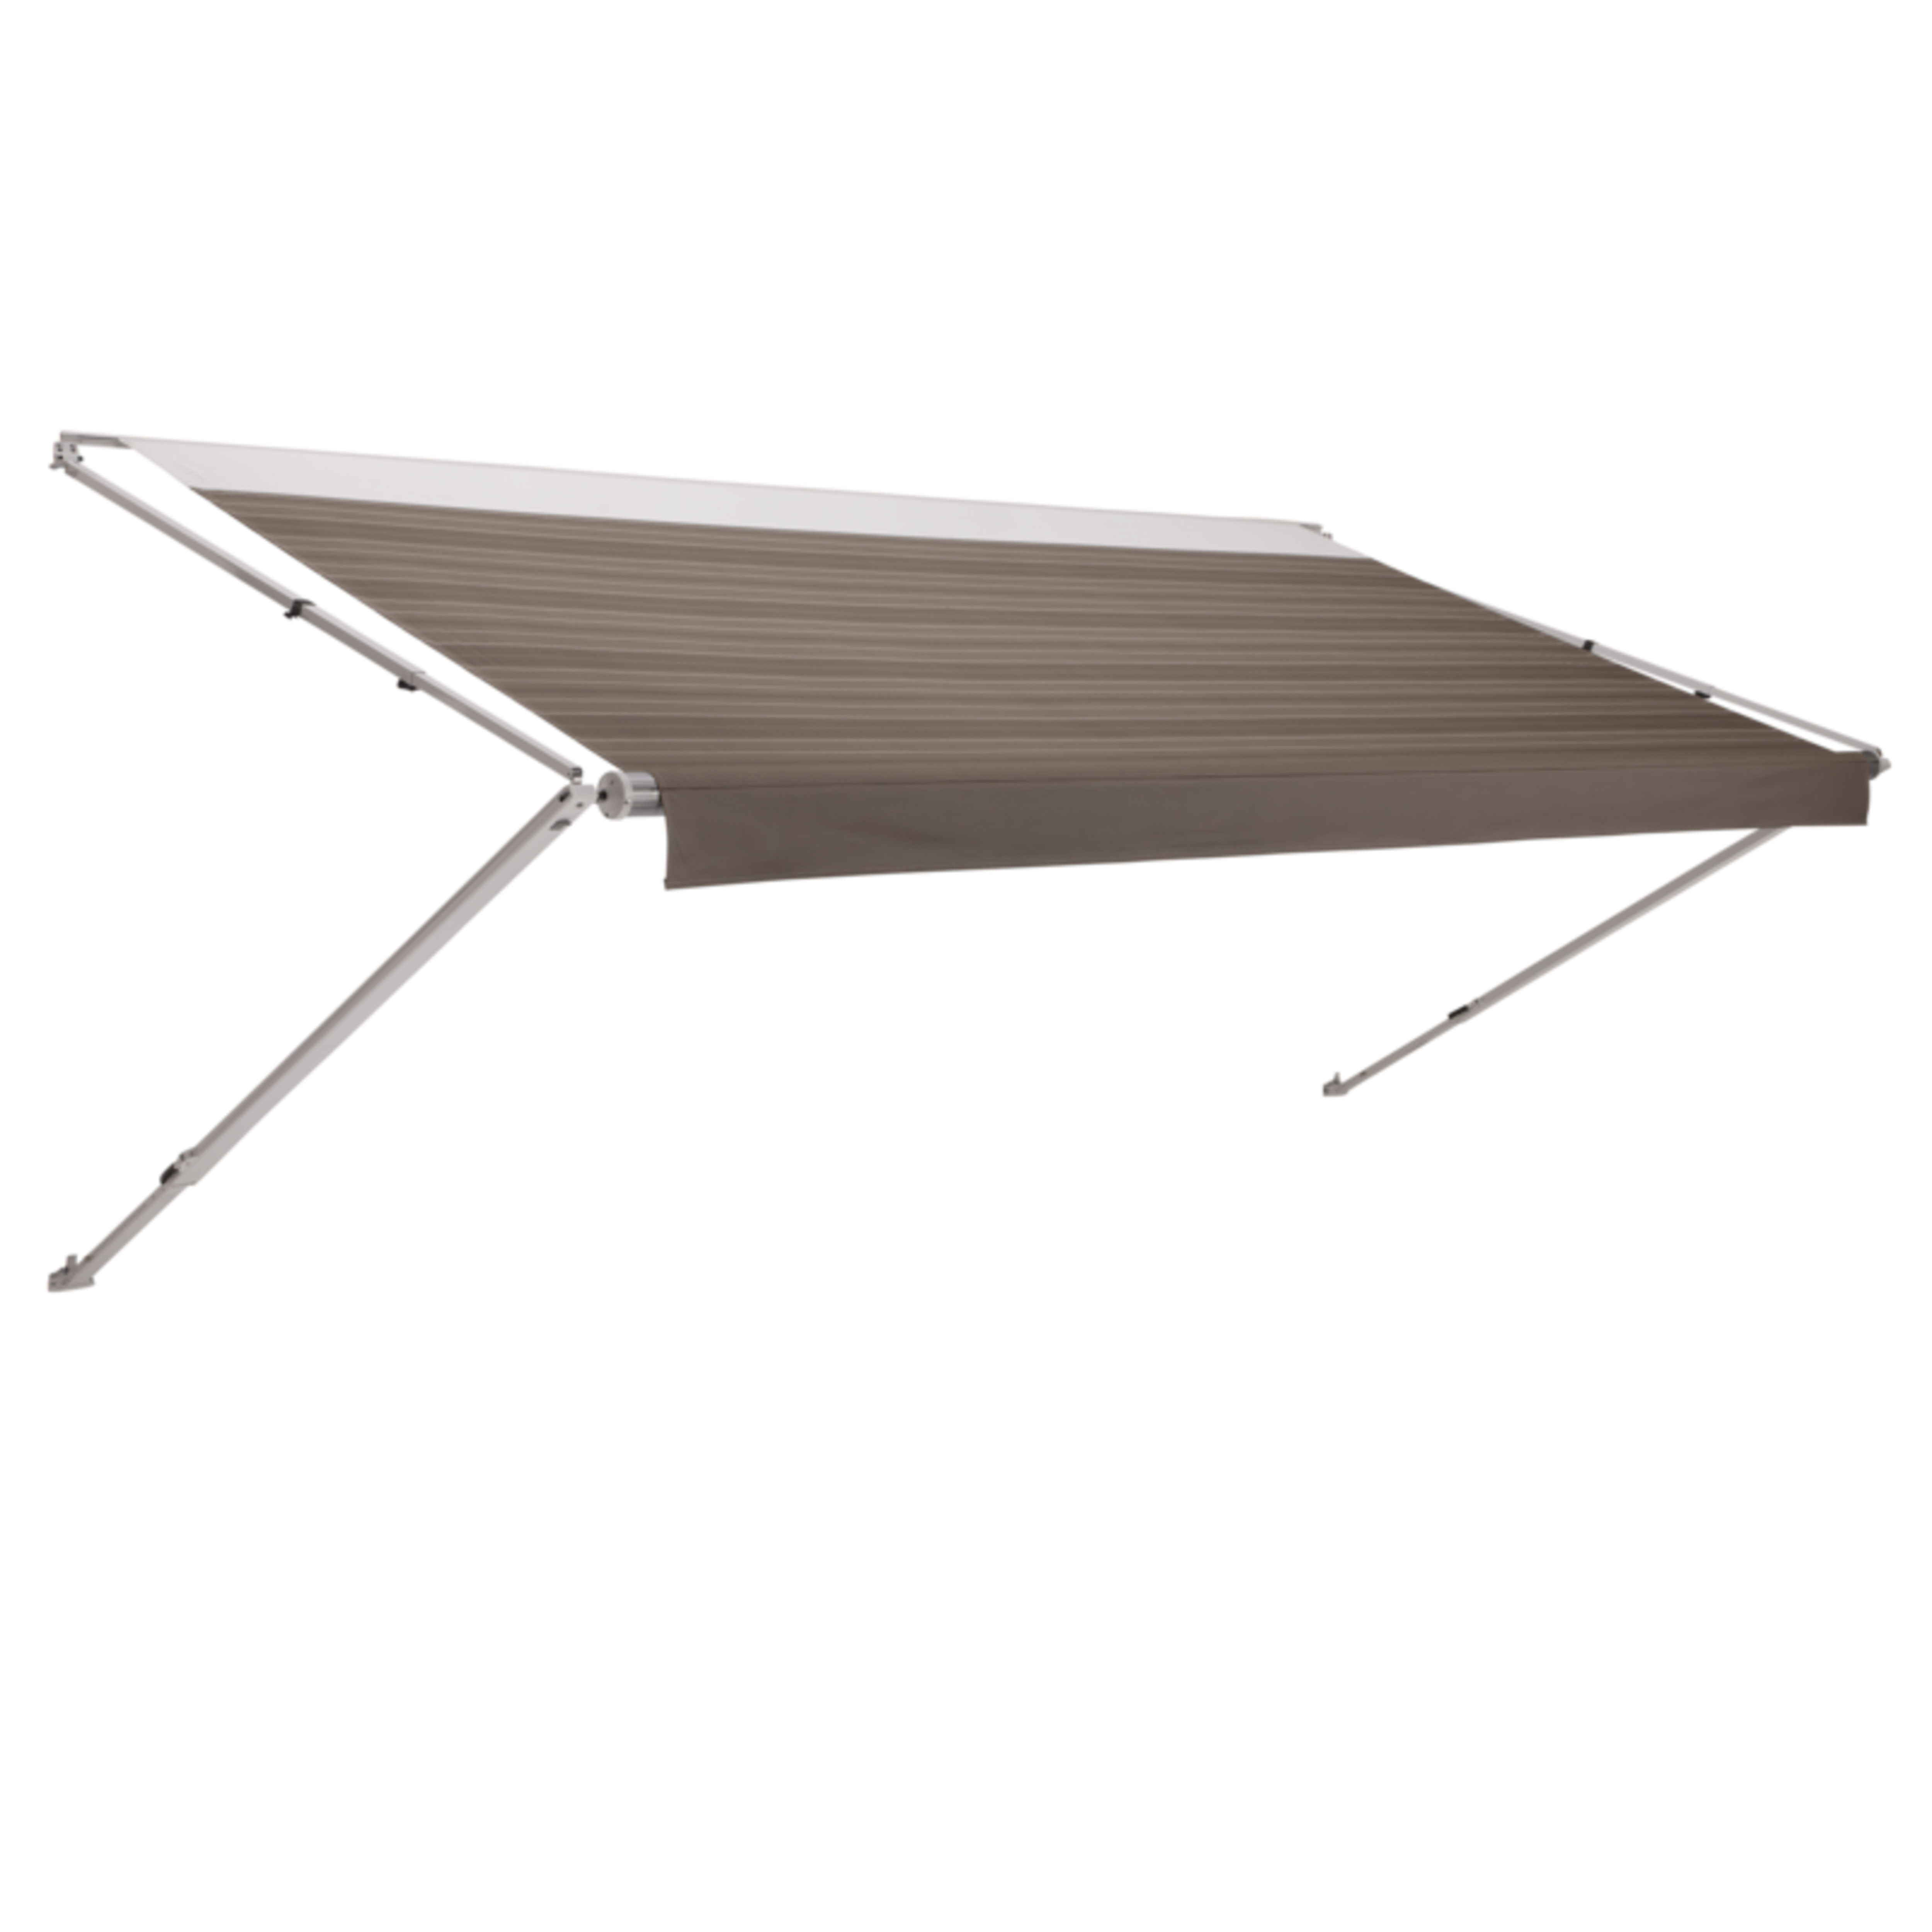 Dometic Sunchaser Patio Awning Dometic